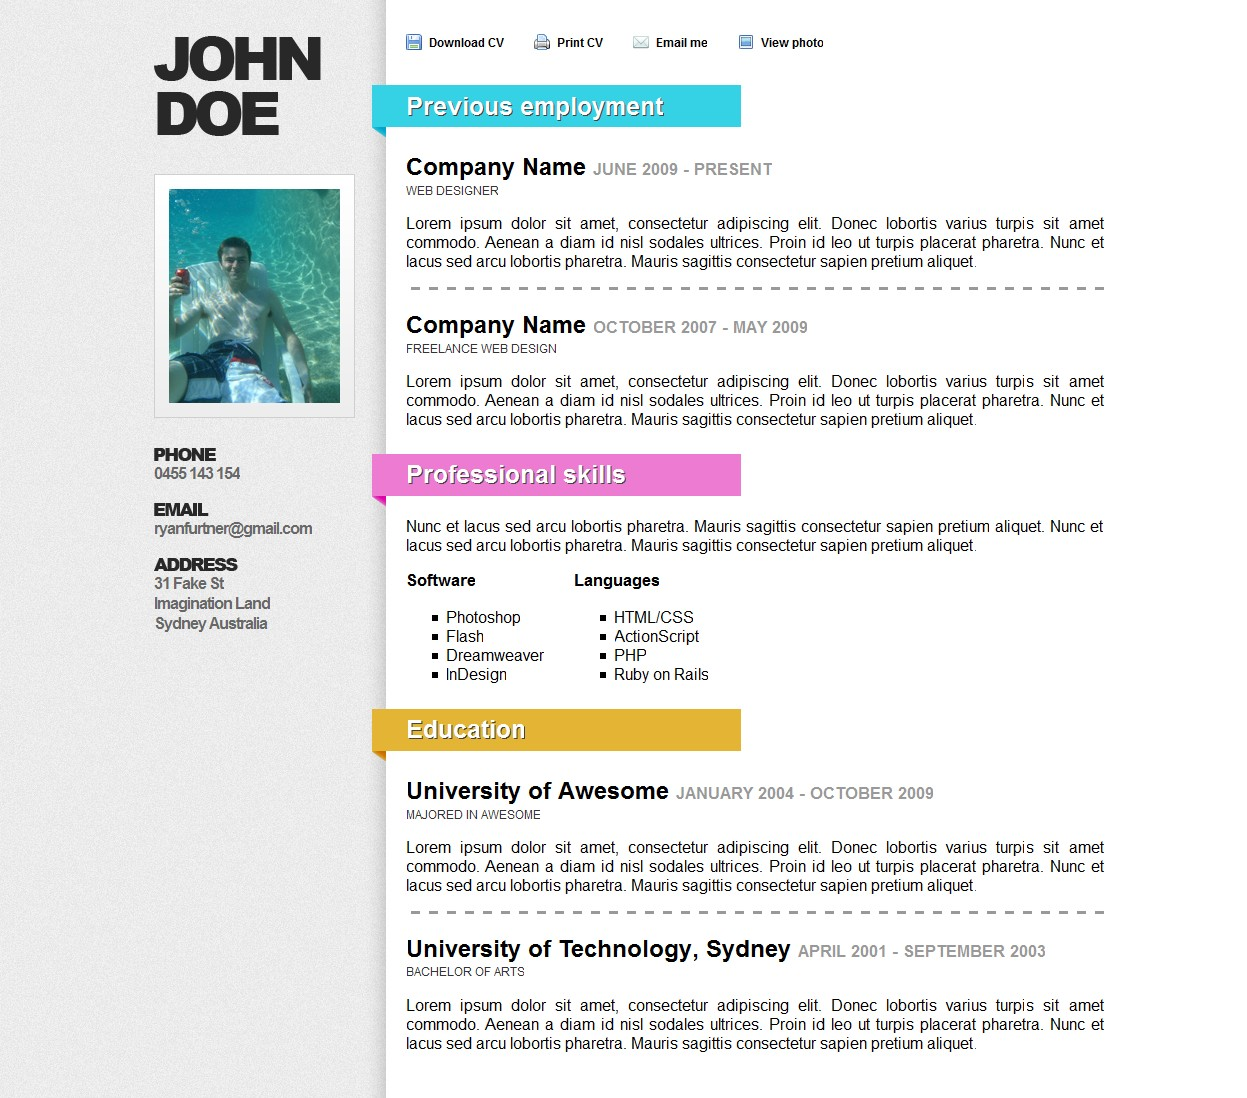 awesome resume cv themeforest